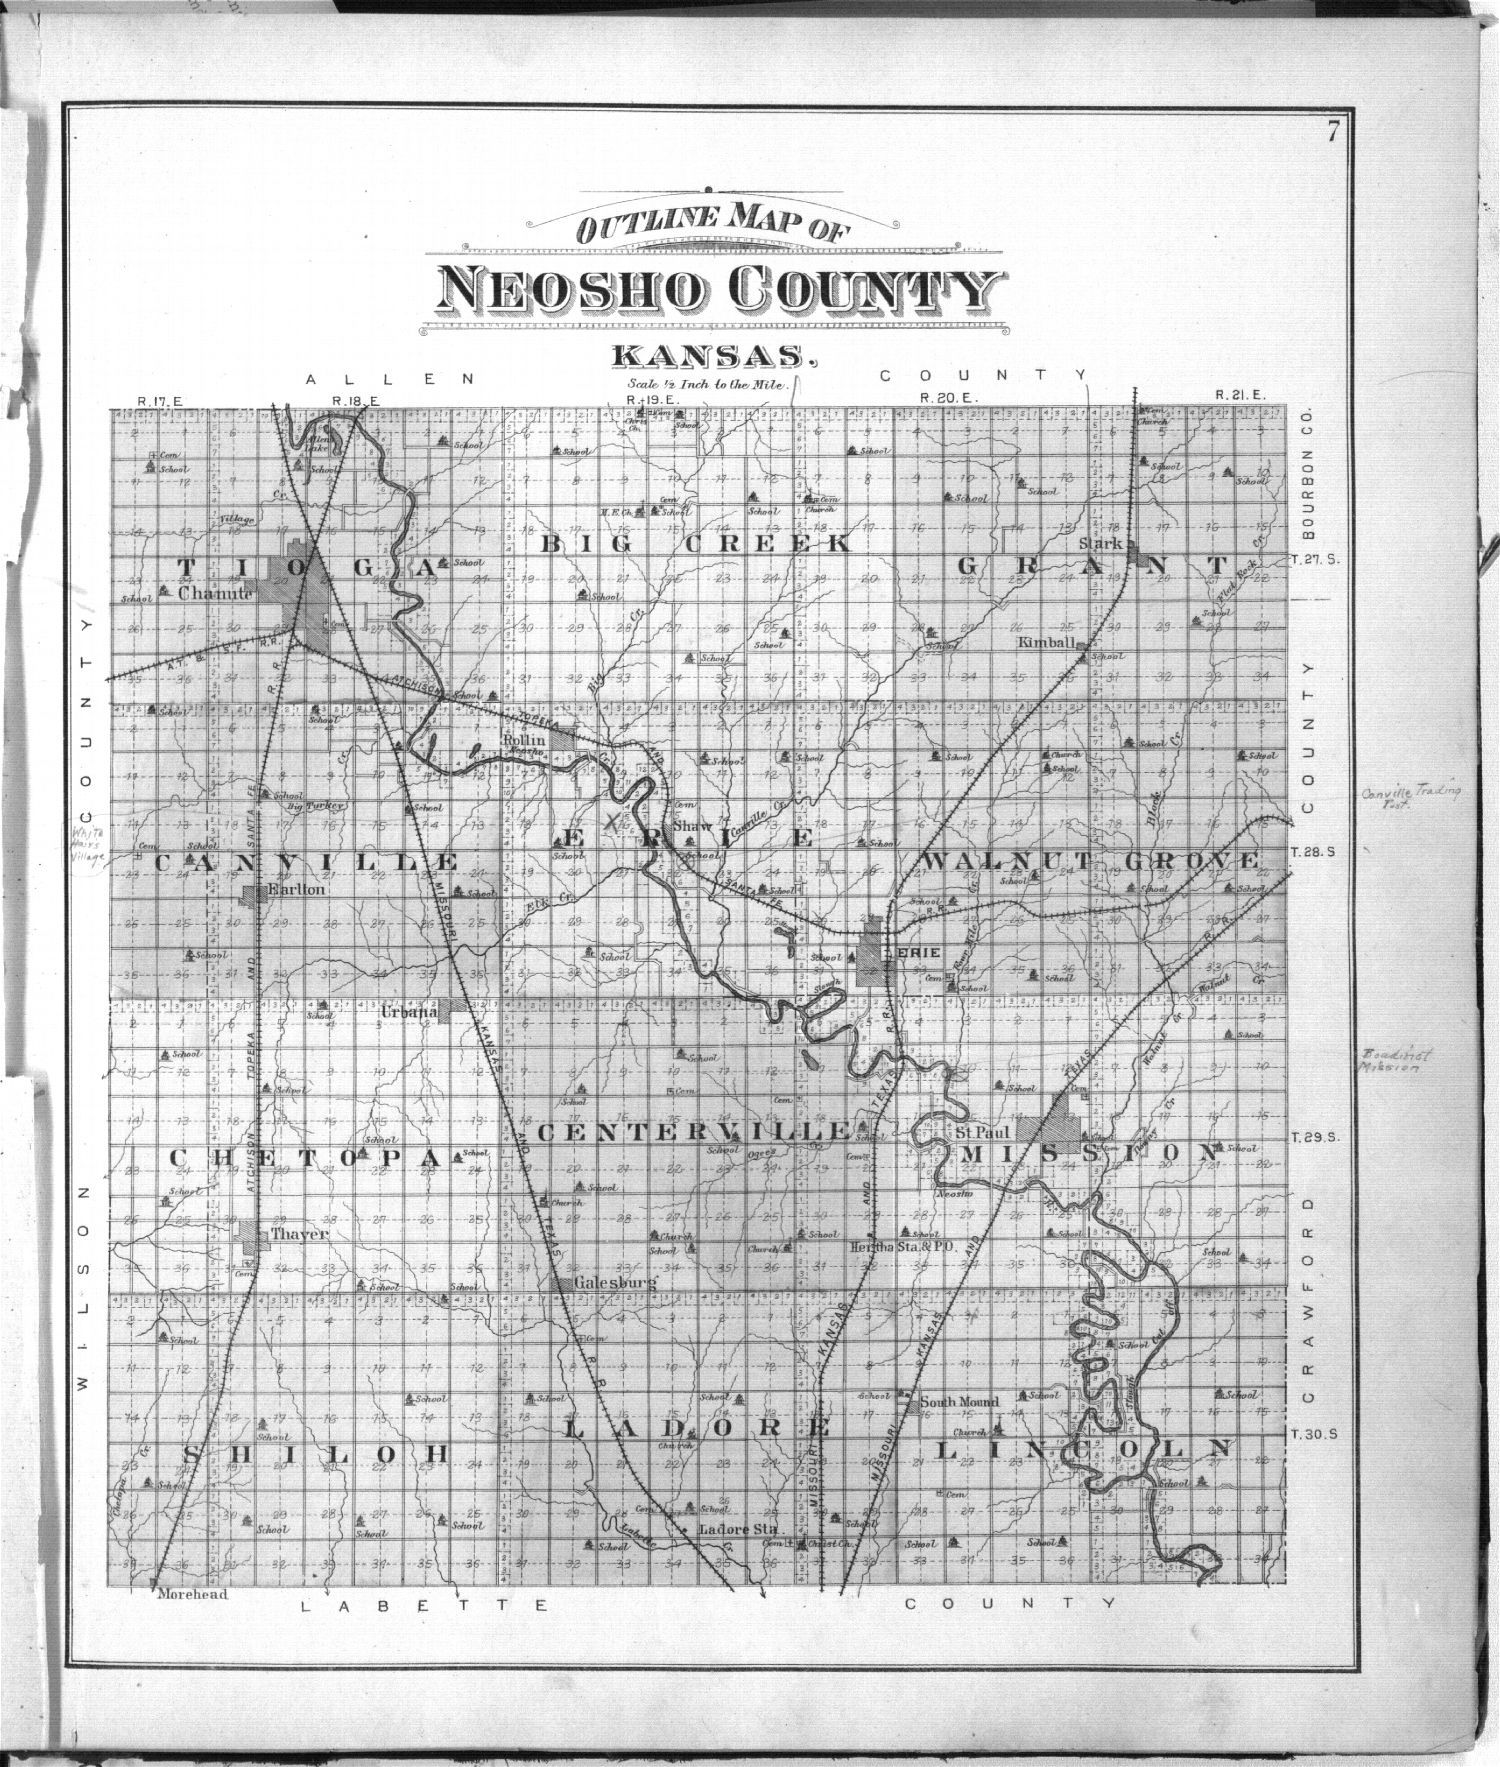 Standard atlas of Neosho County, Kansas - 7